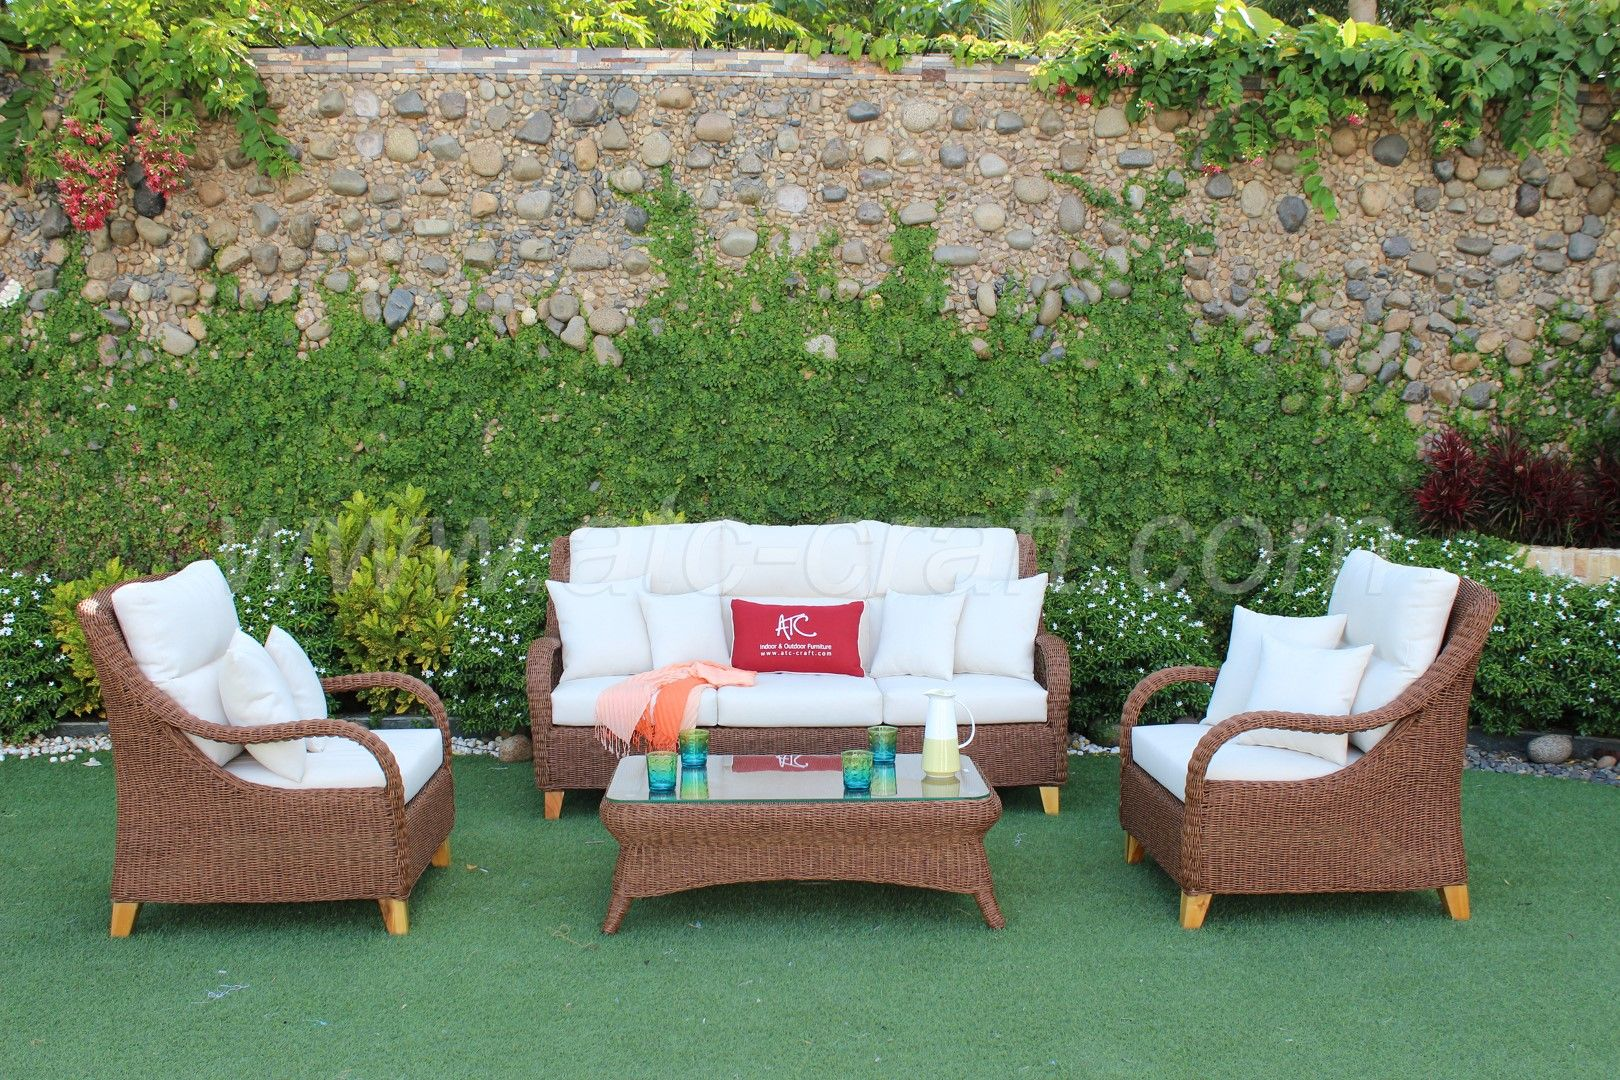 New Collection Of Outdoor Funiture Sofa Sets Made By Atc Furniture Manufacturer Wicker Furniture Furniture Hyacinth Furniture